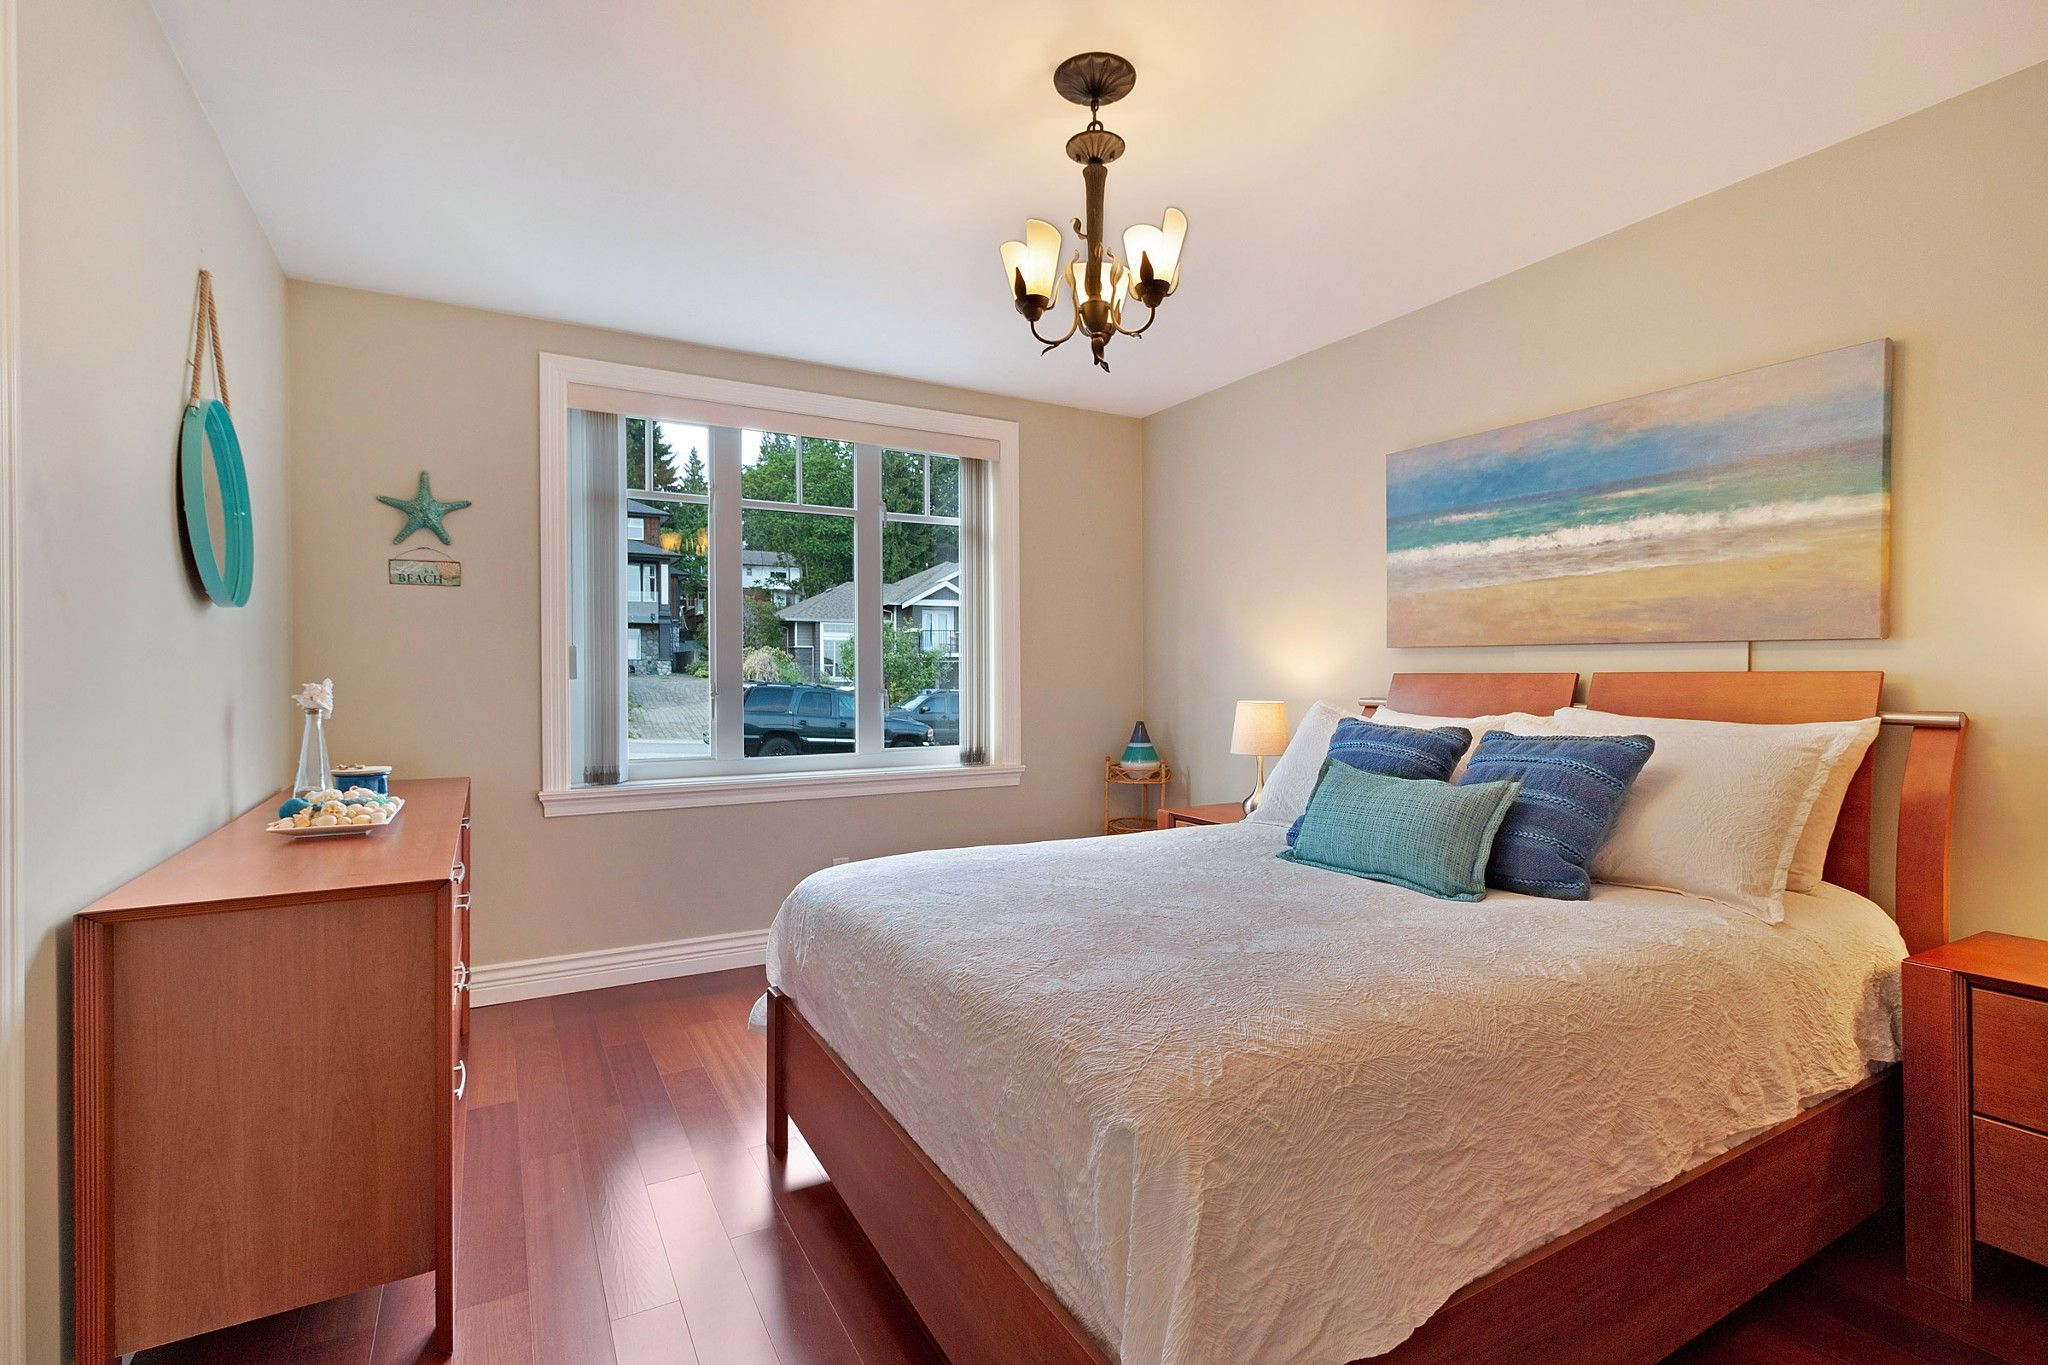 Photo 23: Photos: 1237 DYCK Road in North Vancouver: Lynn Valley House for sale : MLS®# R2374868